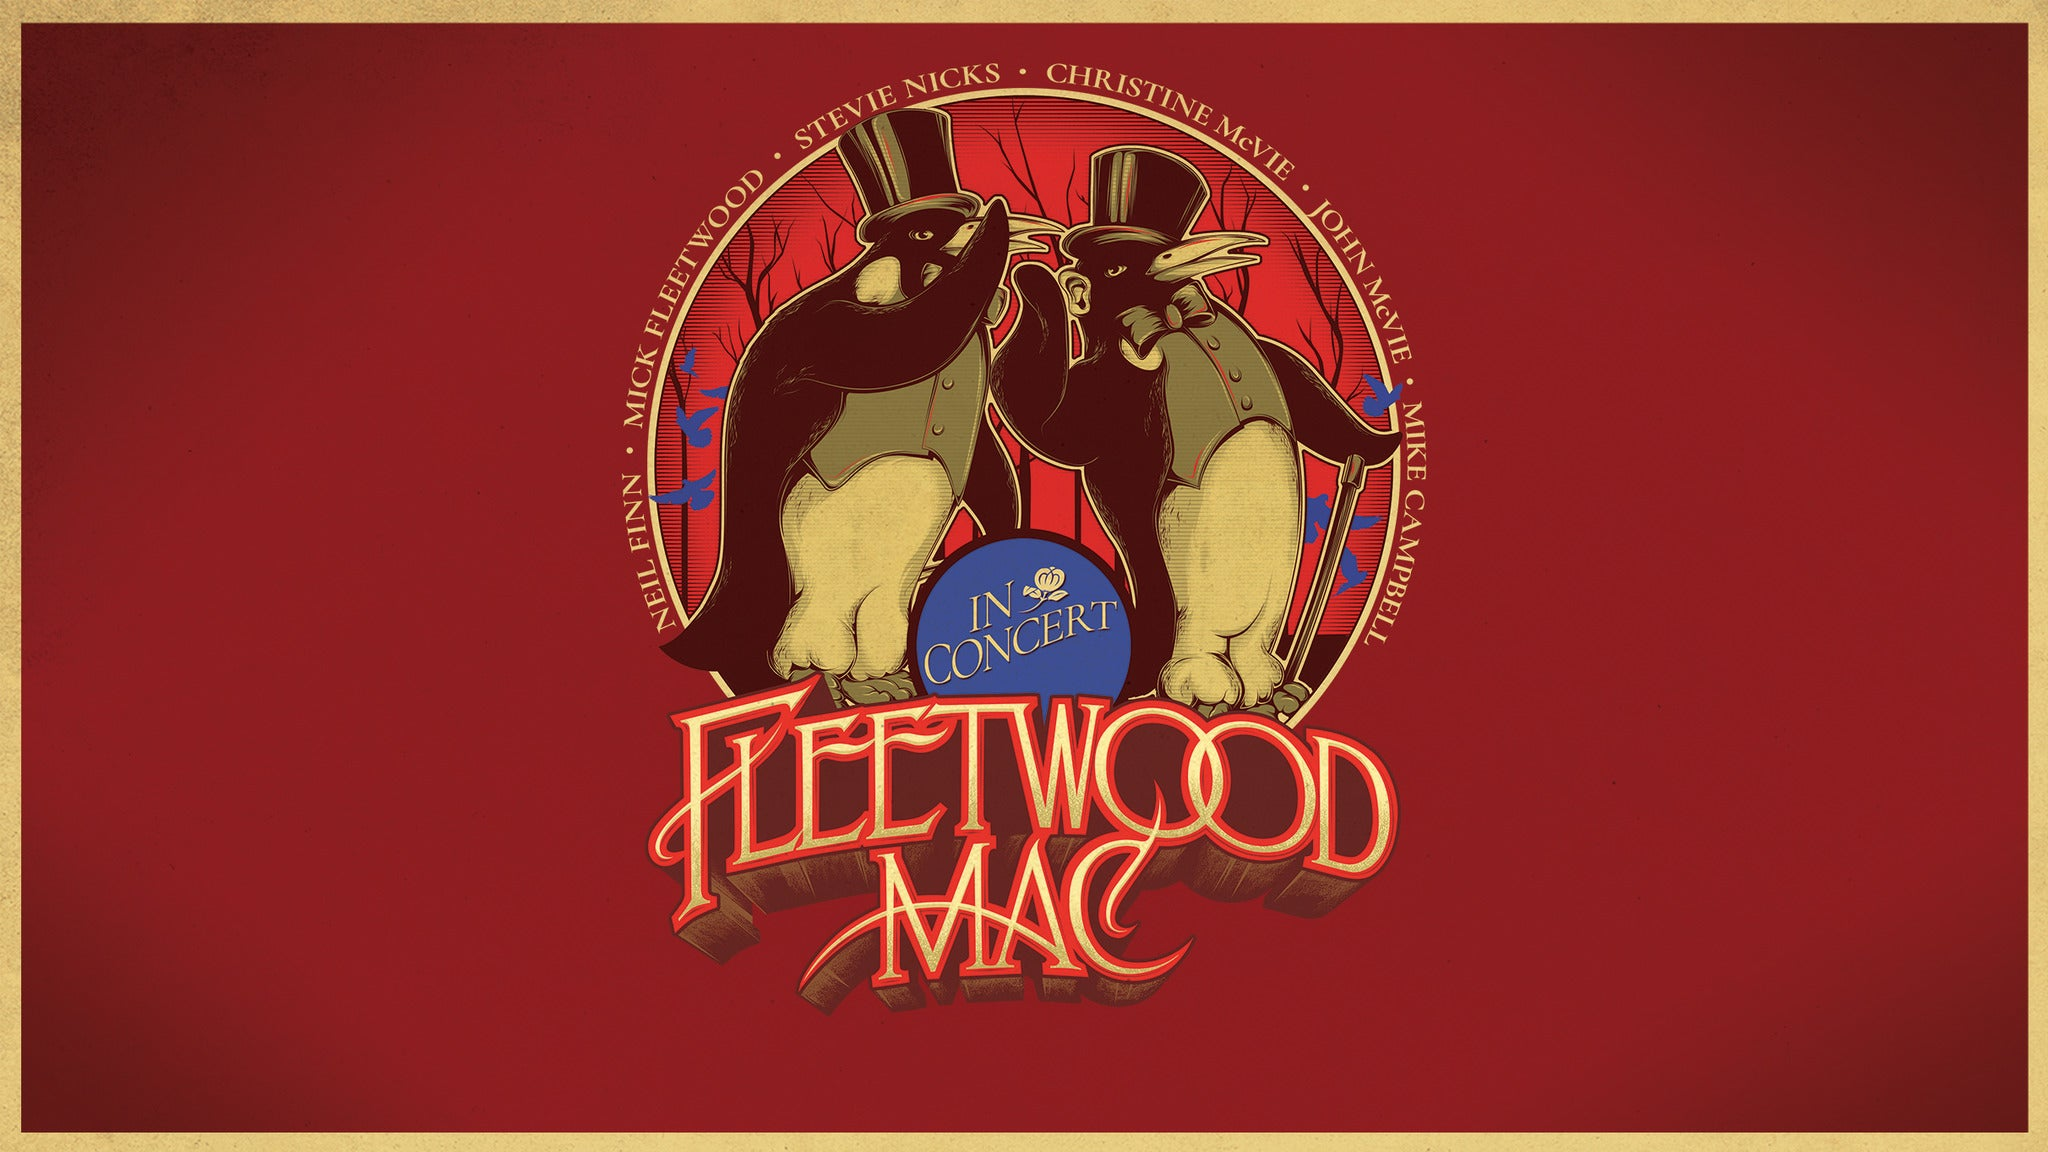 An Evening With Fleetwood Mac at Wells Fargo Arena